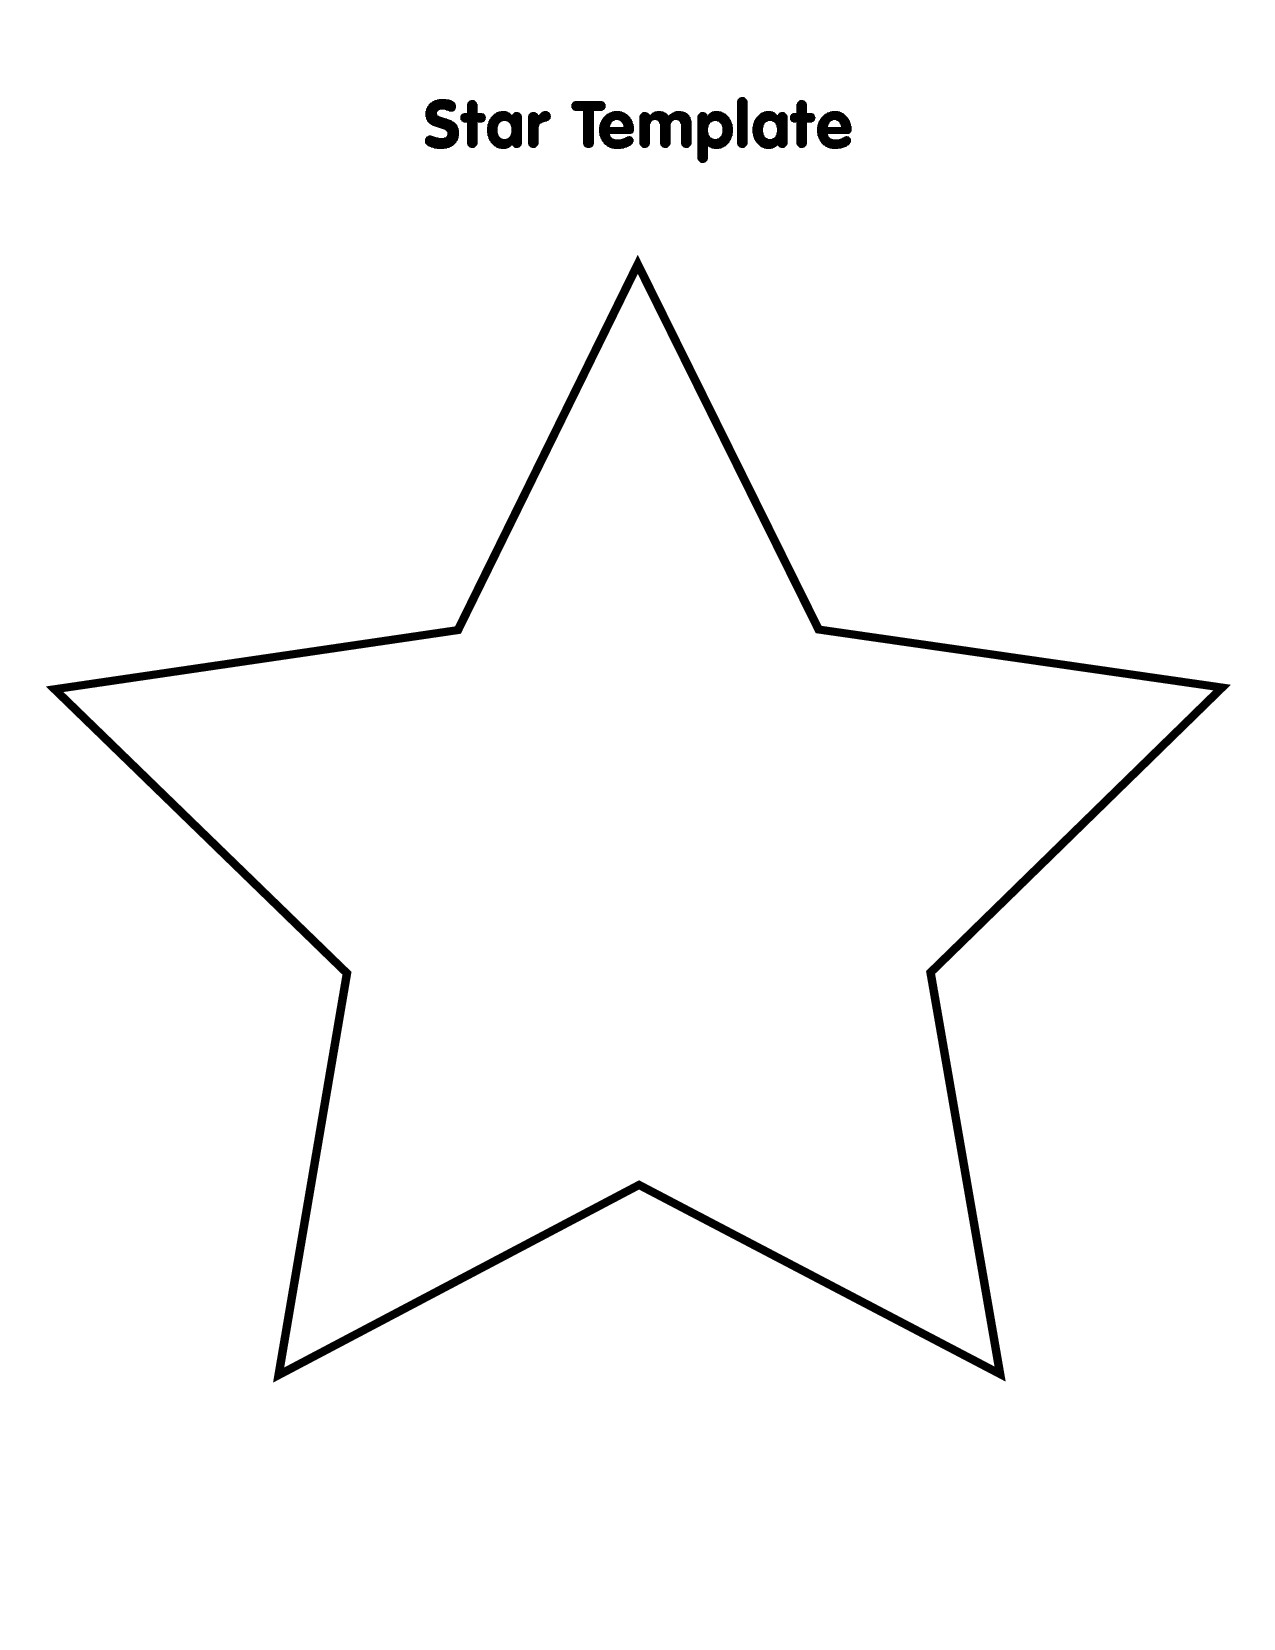 Star outline images large star outline related keywords clipart